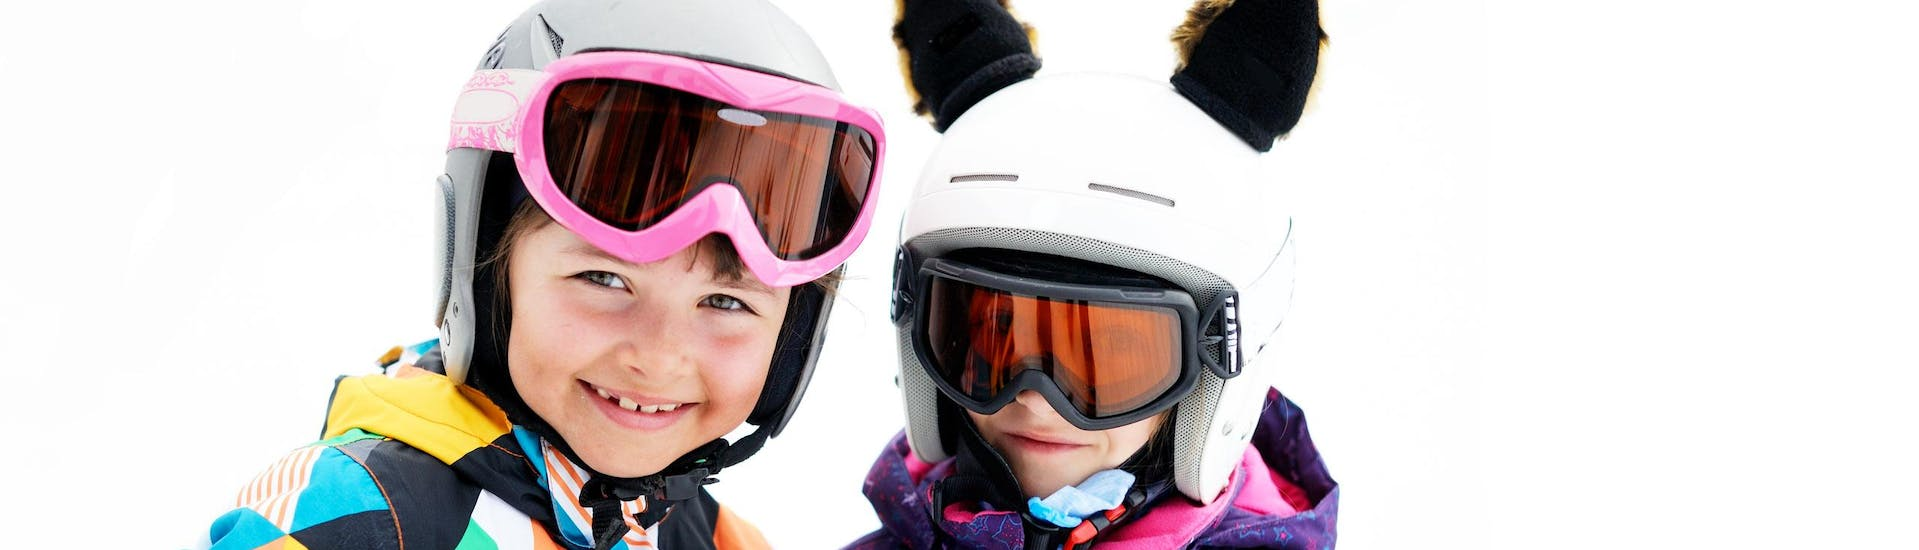 Two young children smiling at the camera during one of the Private Ski Lessons for Kids of All Ages organised by Otto's Skischule - Katschberg.